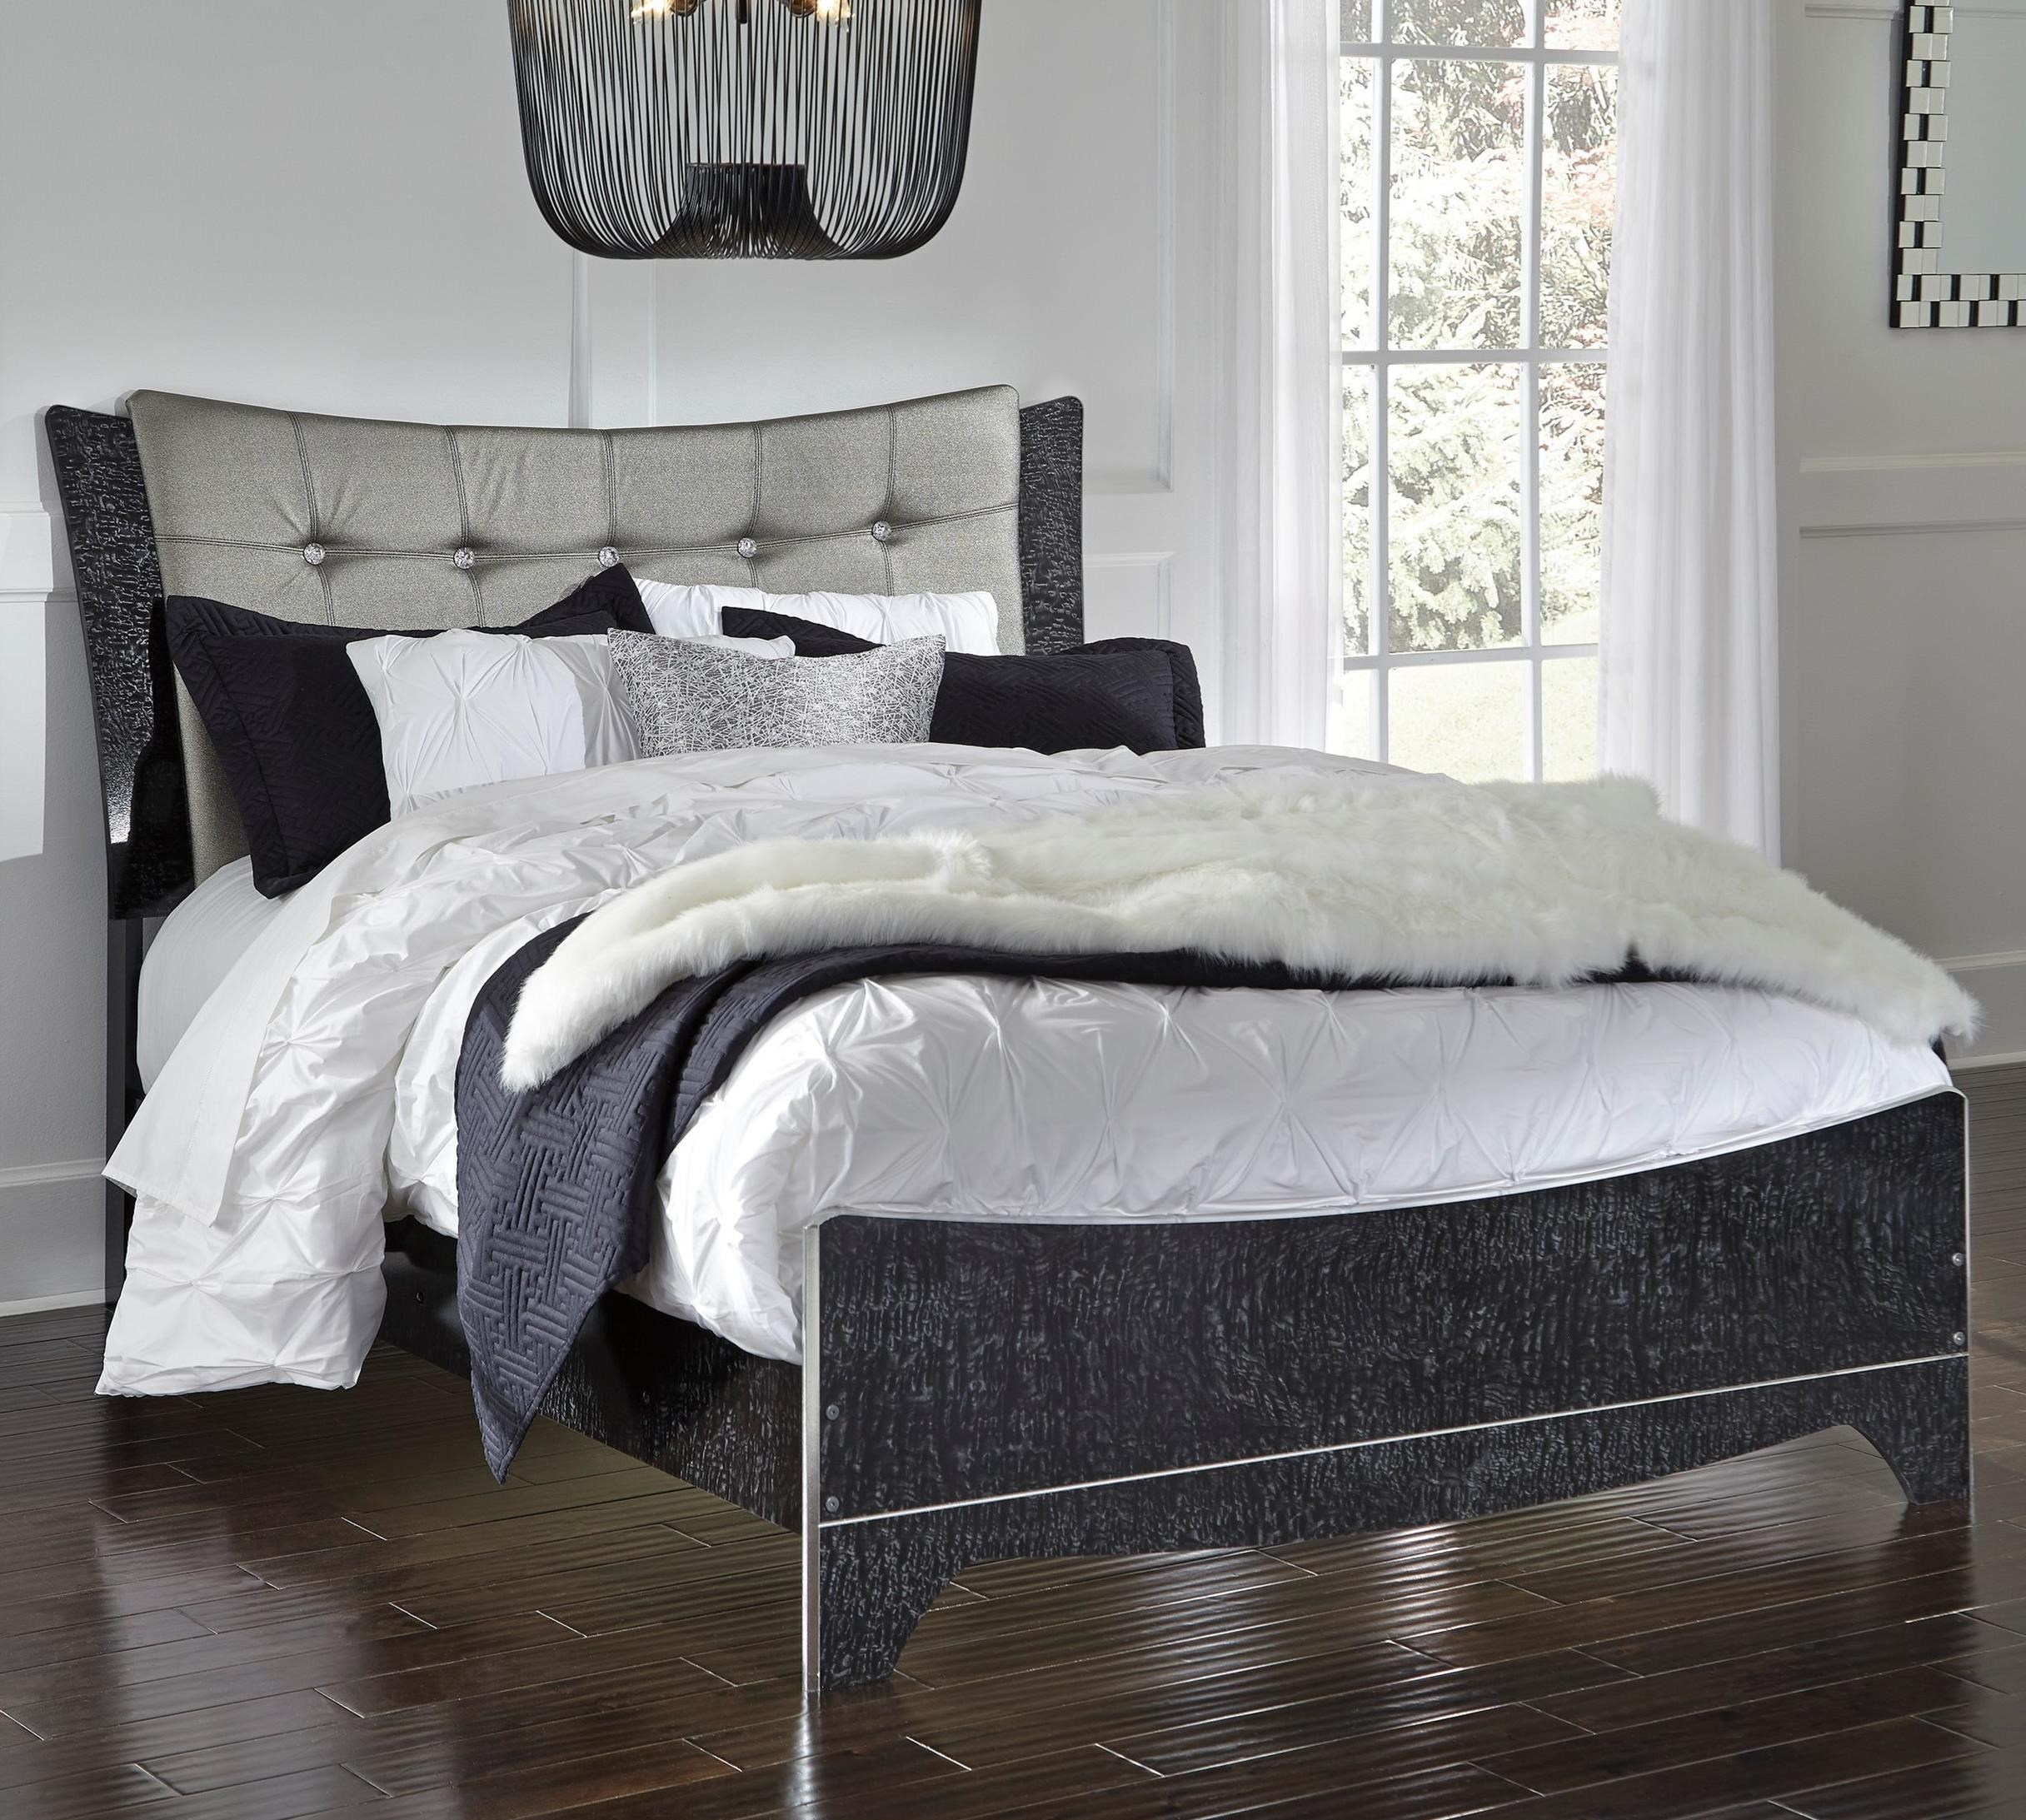 Signature Design by Ashley Amrothi Queen Upholstered Panel Bed - Item Number: B257-57+54+96